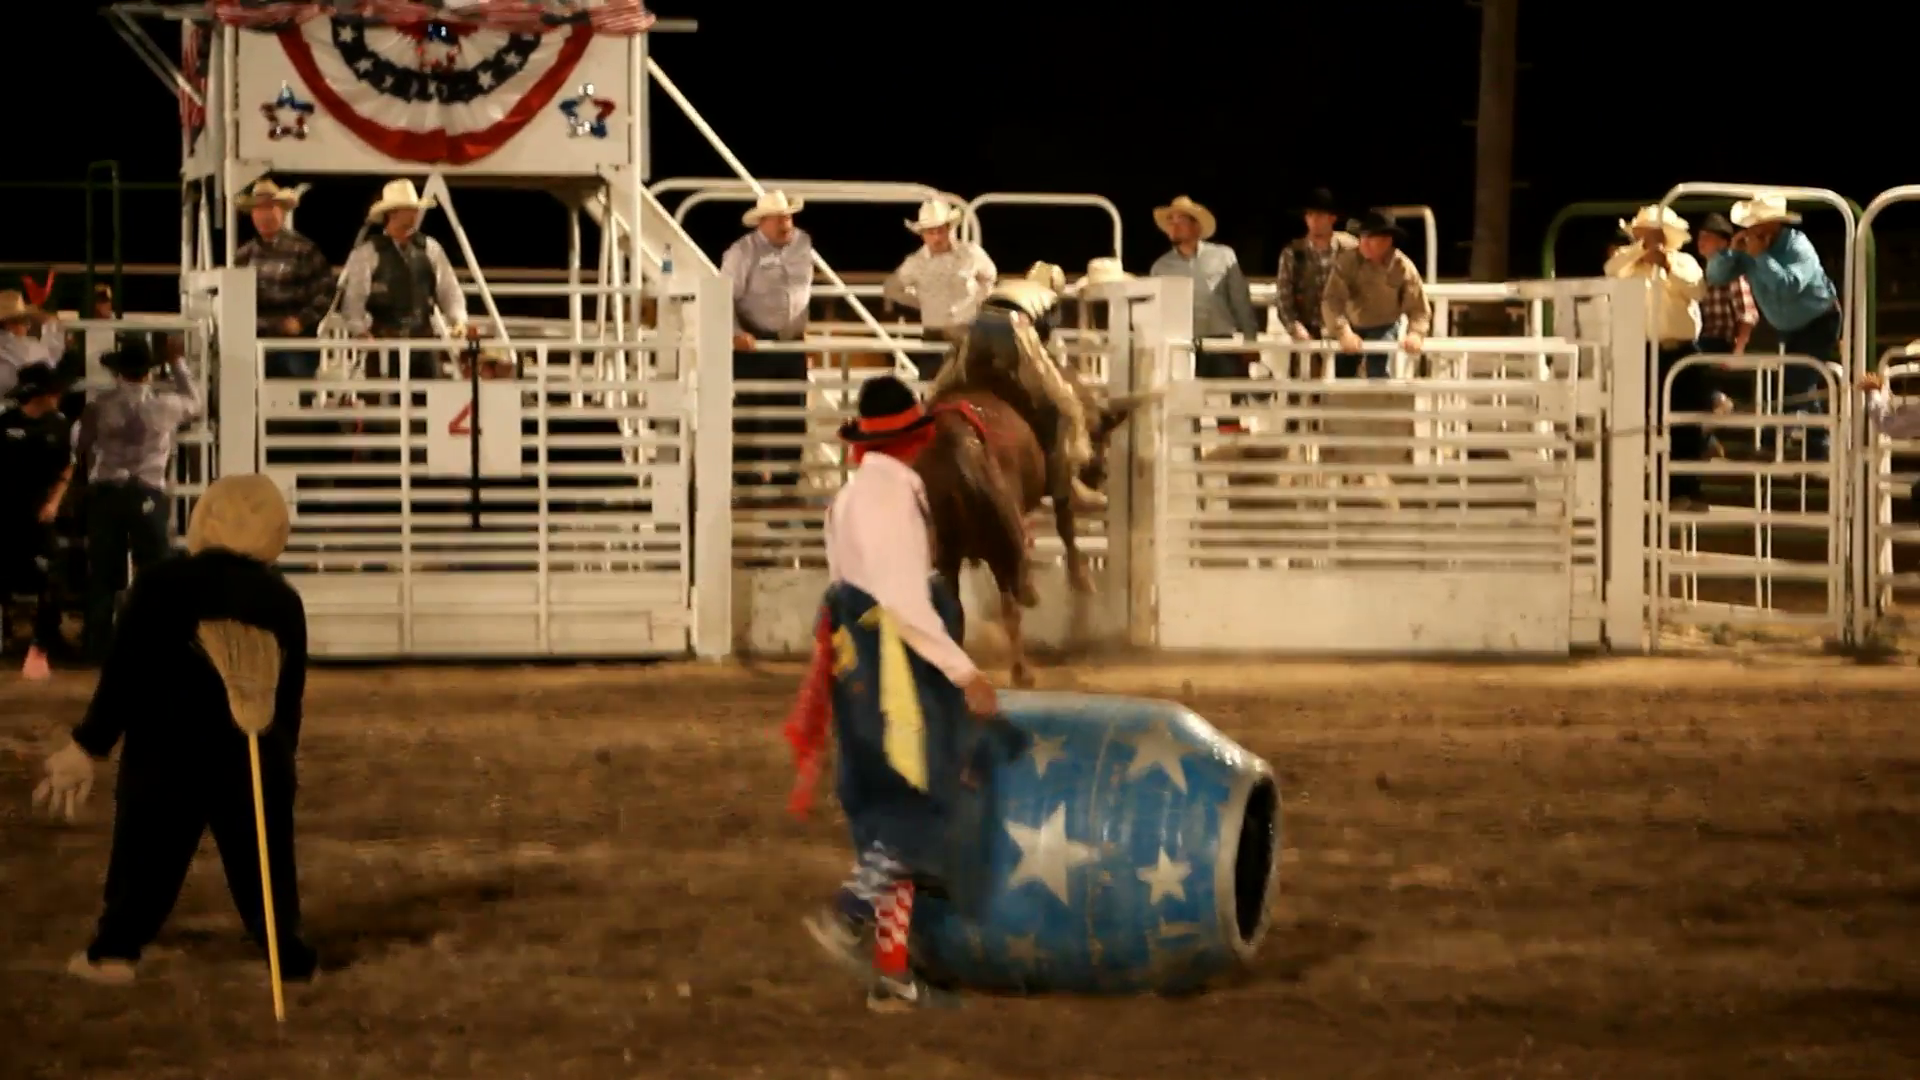 Bull rider stuck on bull at rodeo P HD 1002 Stock Video Footage -  VideoBlocks - Rodeo PNG HD